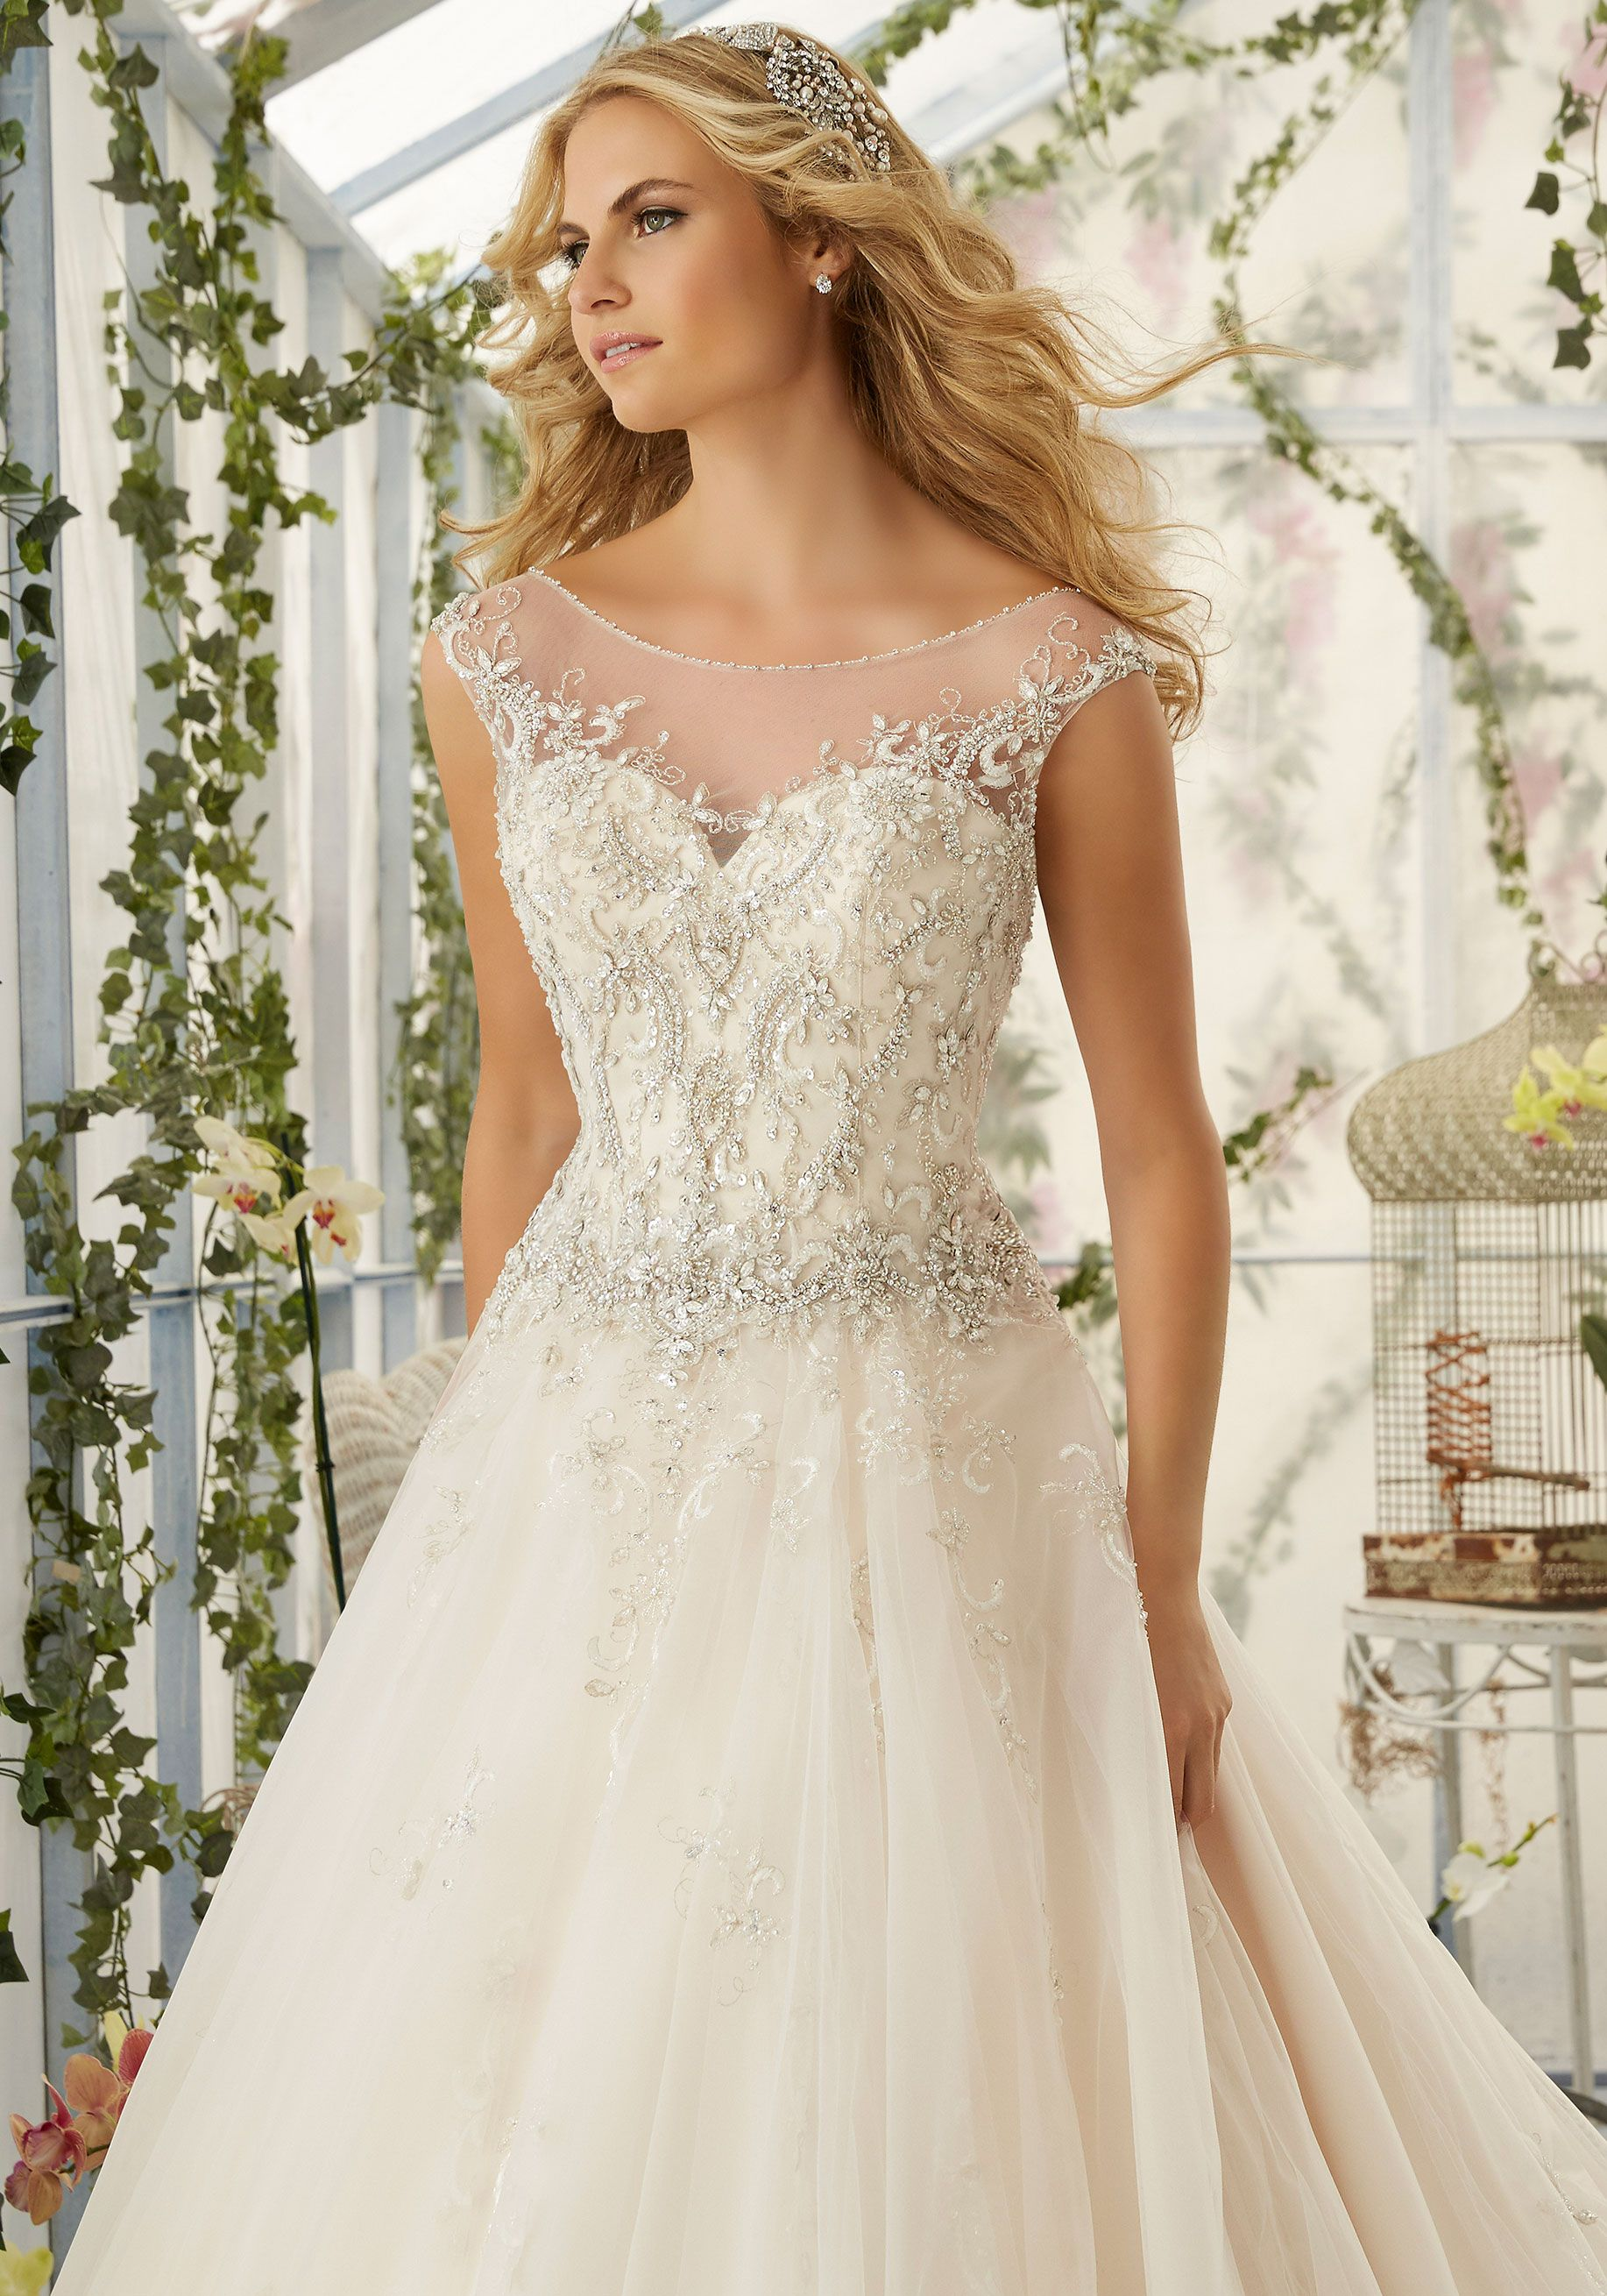 379894abc81 Intricate Crystal Beaded Embroidery Decorates the Tulle Ball Wedding Dress.  Colors available White Silver